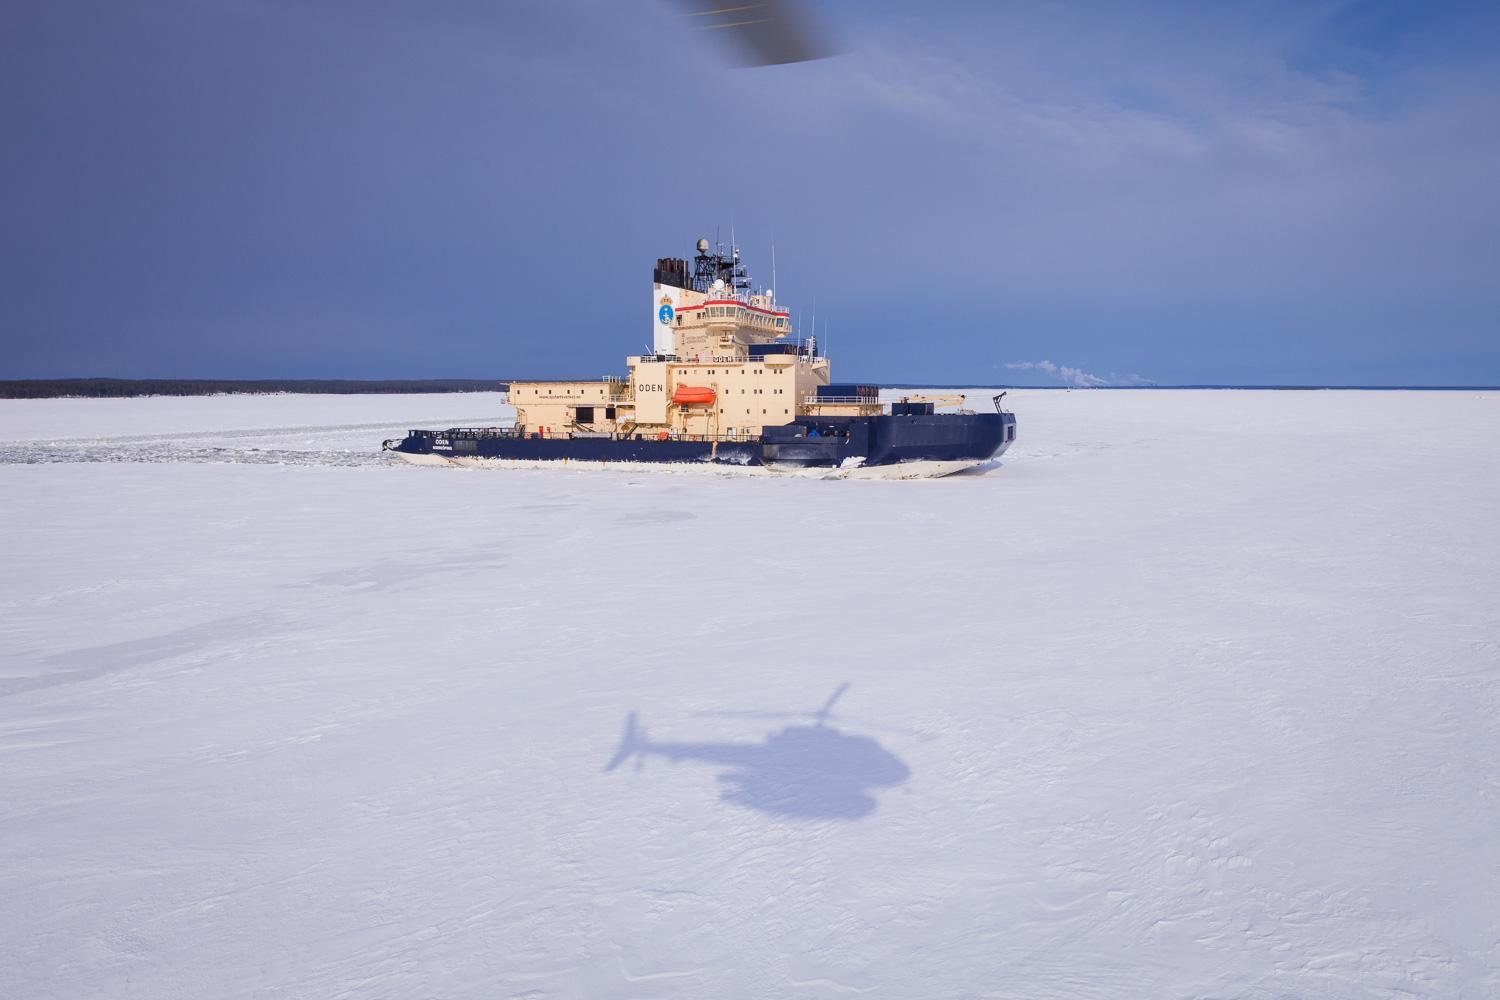 Helicopter transport when leaving the Swedish Icebreaker Oden